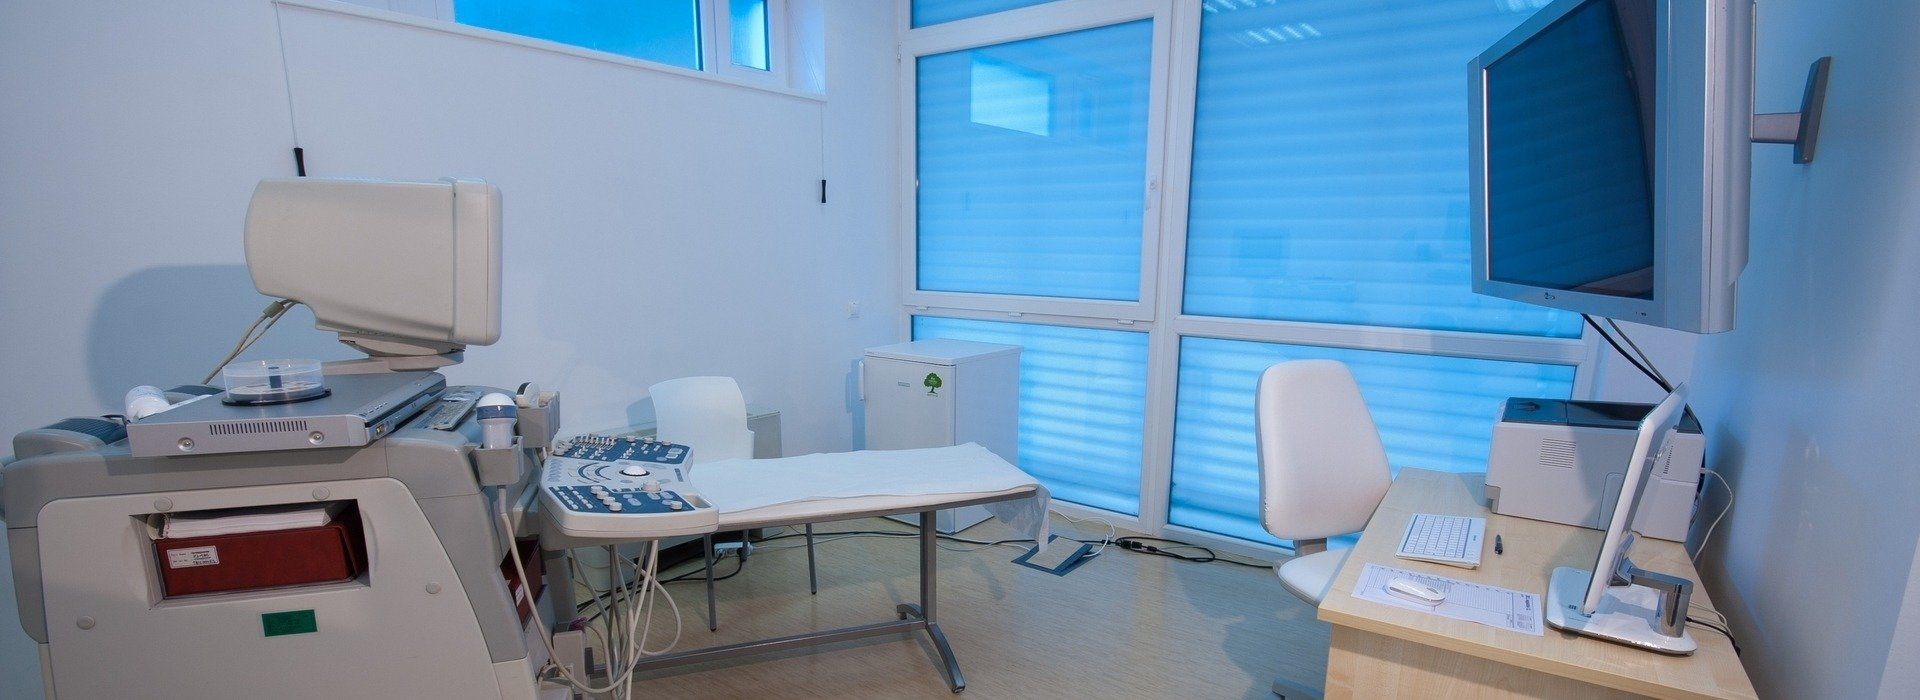 Private clinics in Budapest – Budapest private clinic guide